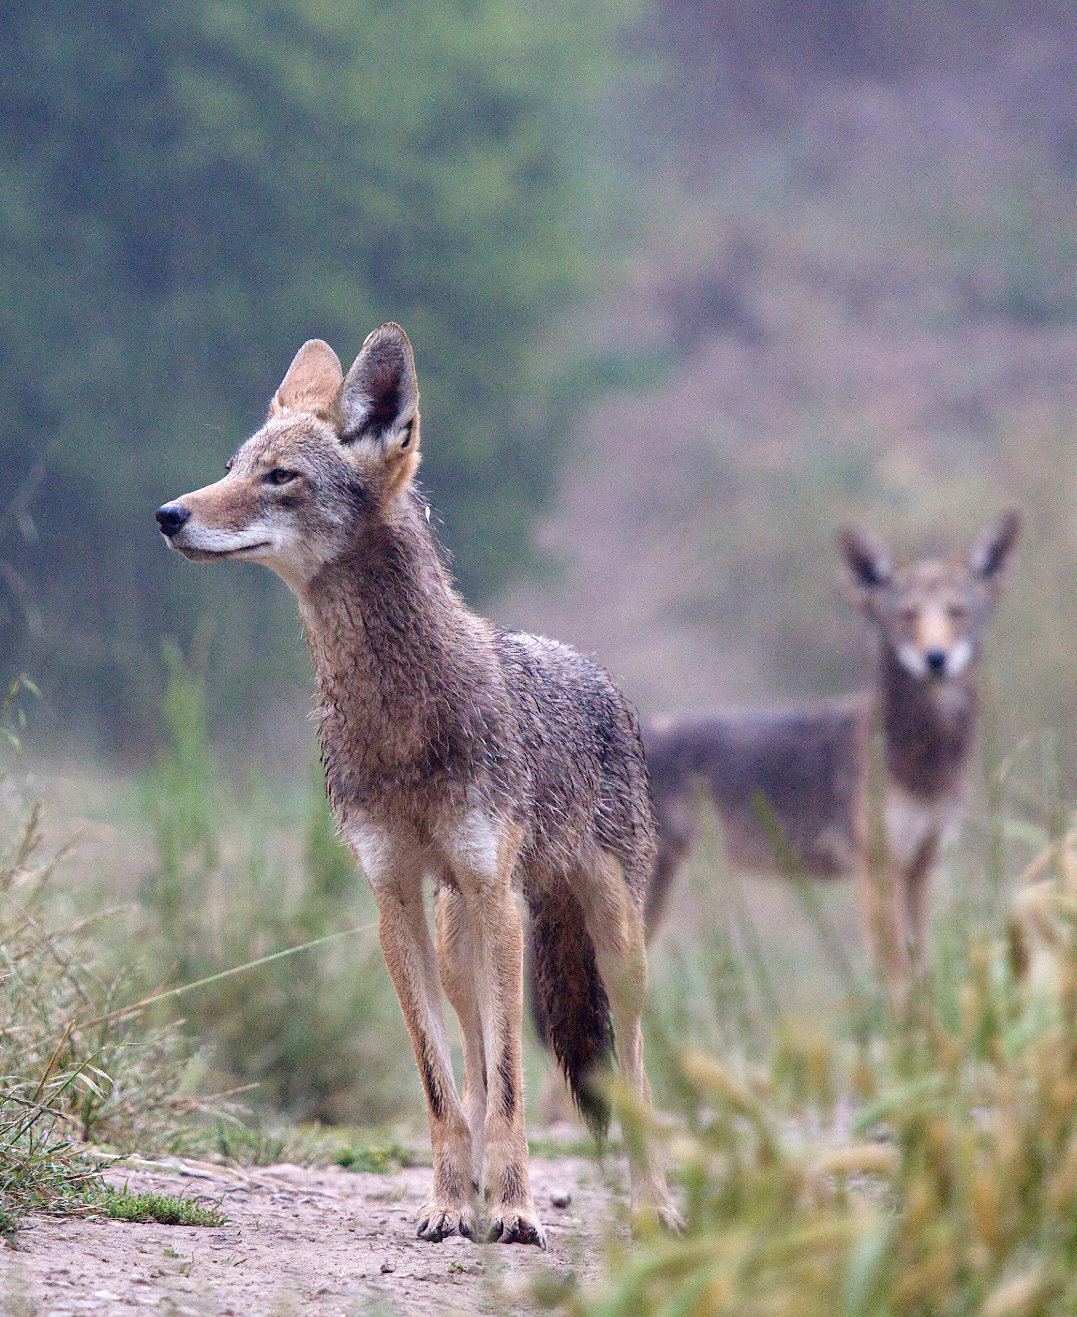 Coyotes increasingly common nationwide